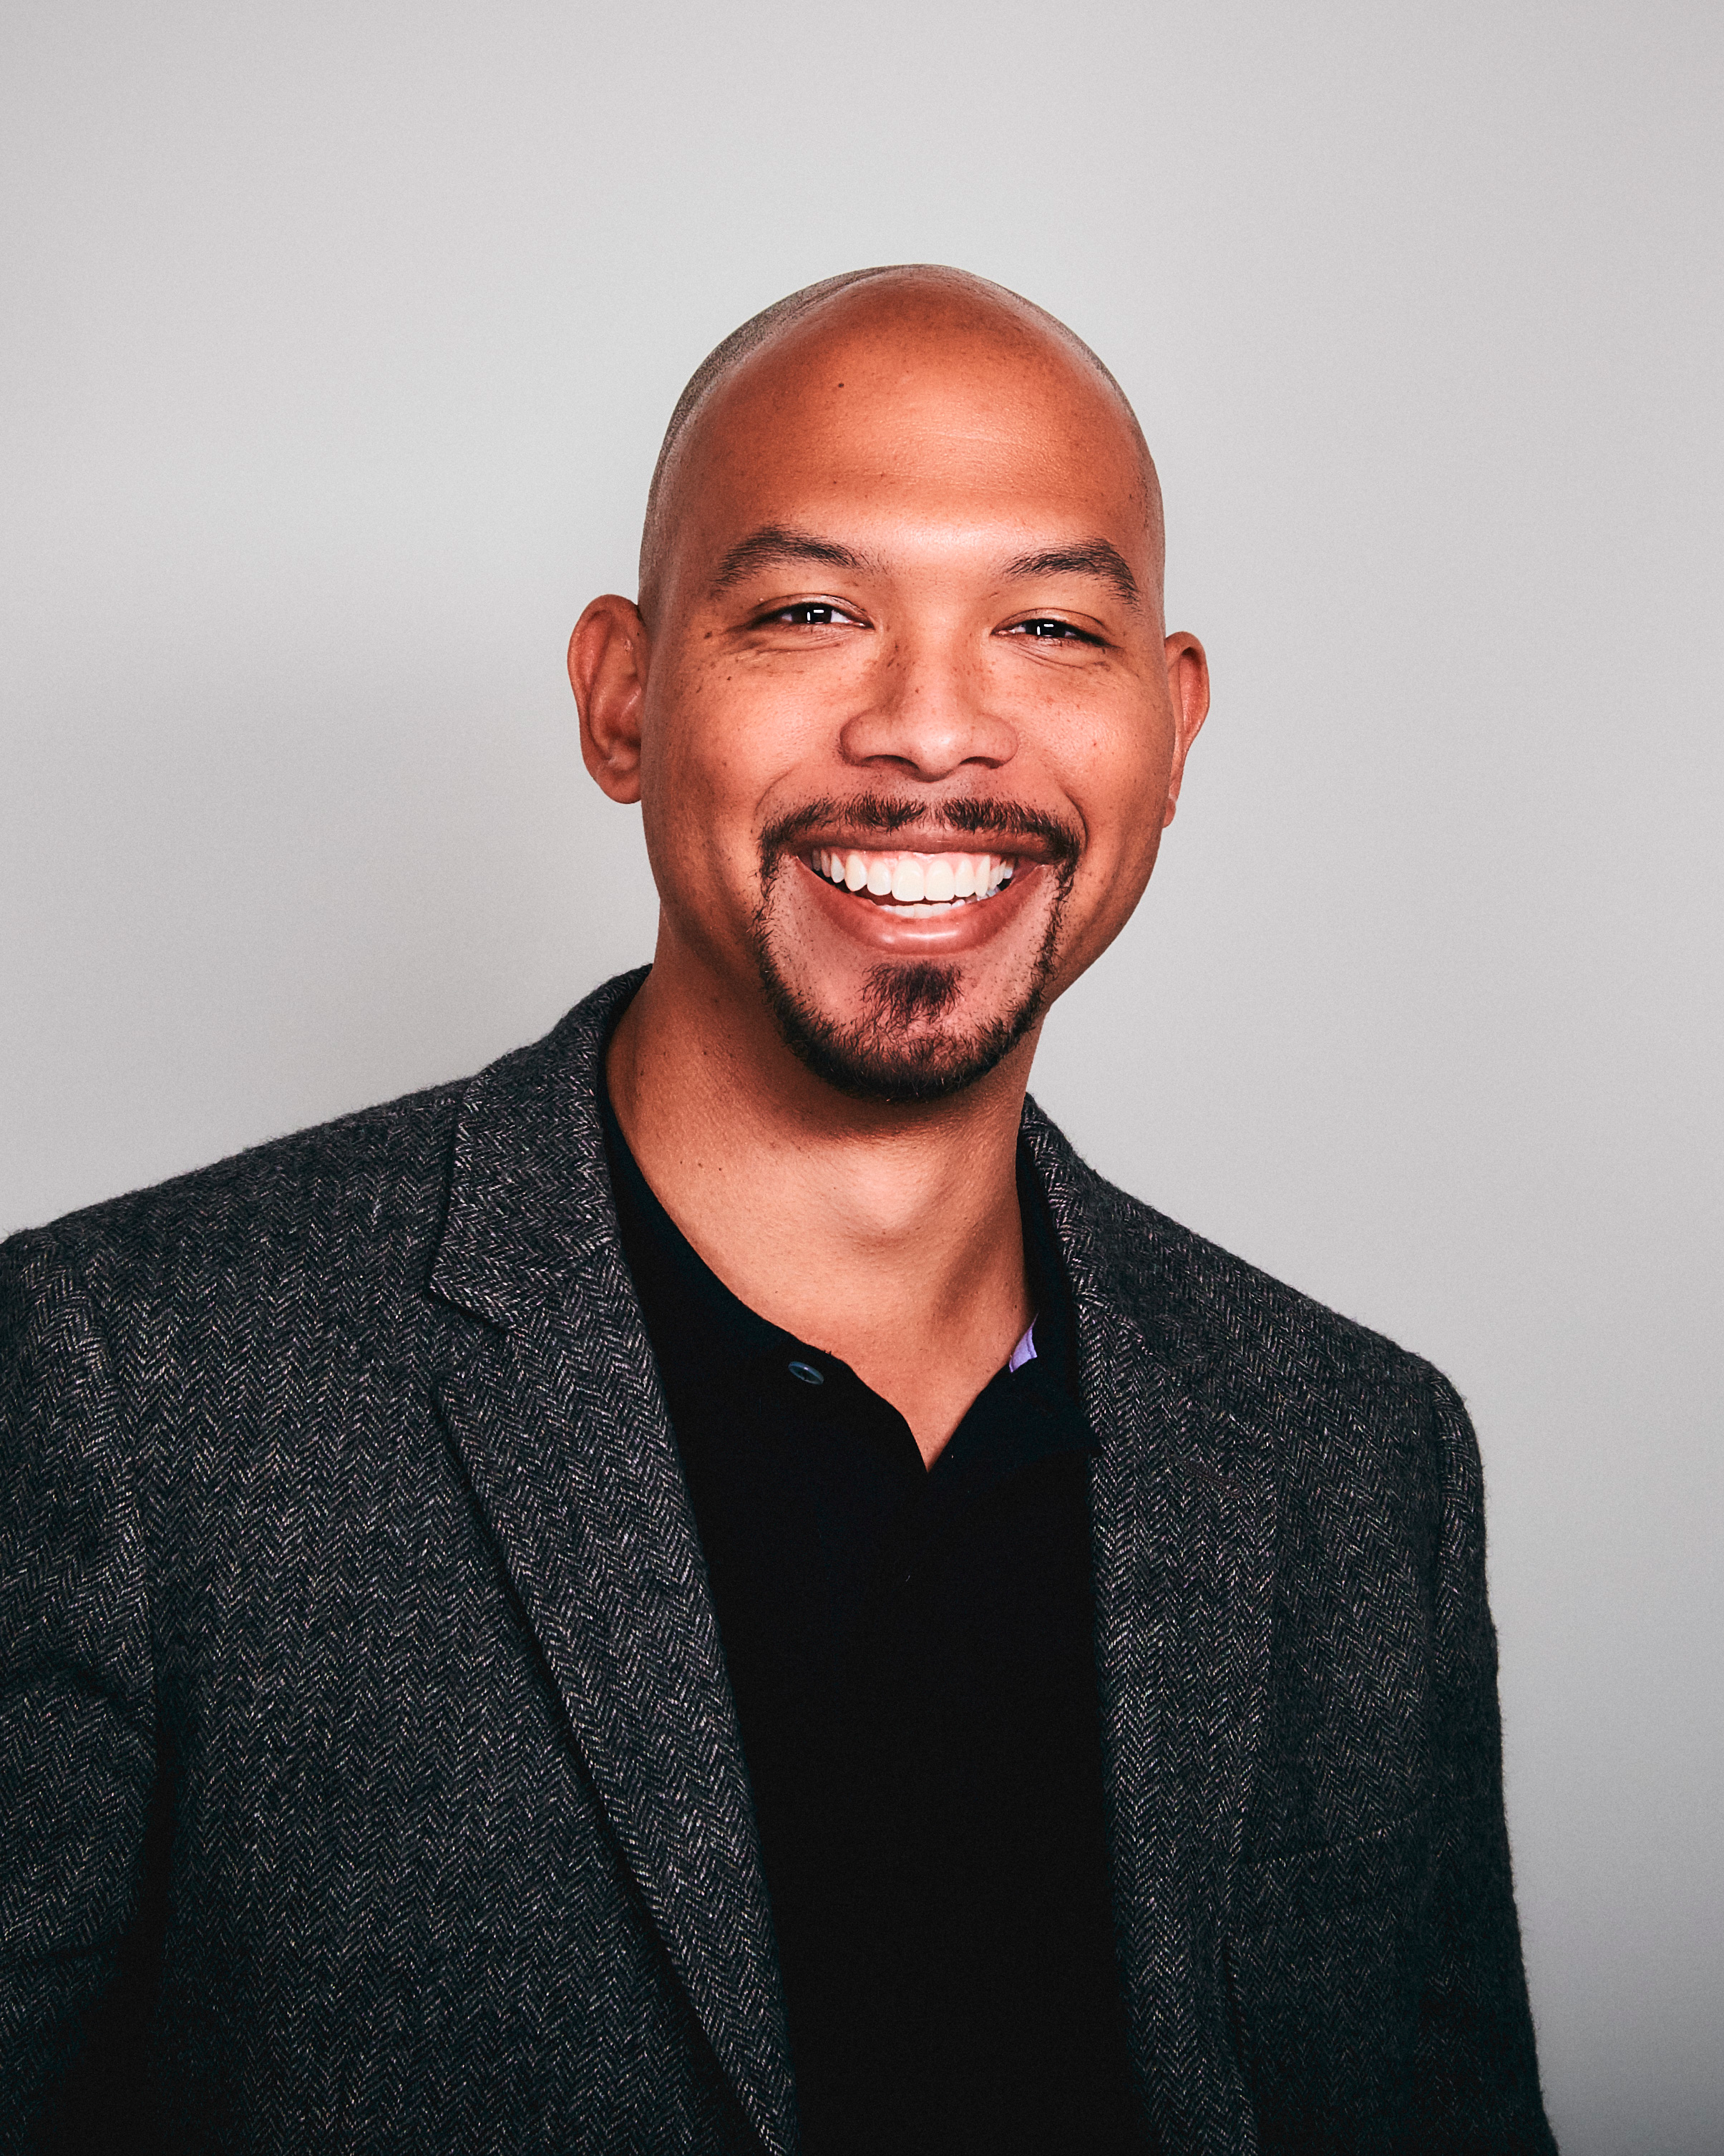 Headshot of Nick Caldwell, Chief Product Office of Looker.